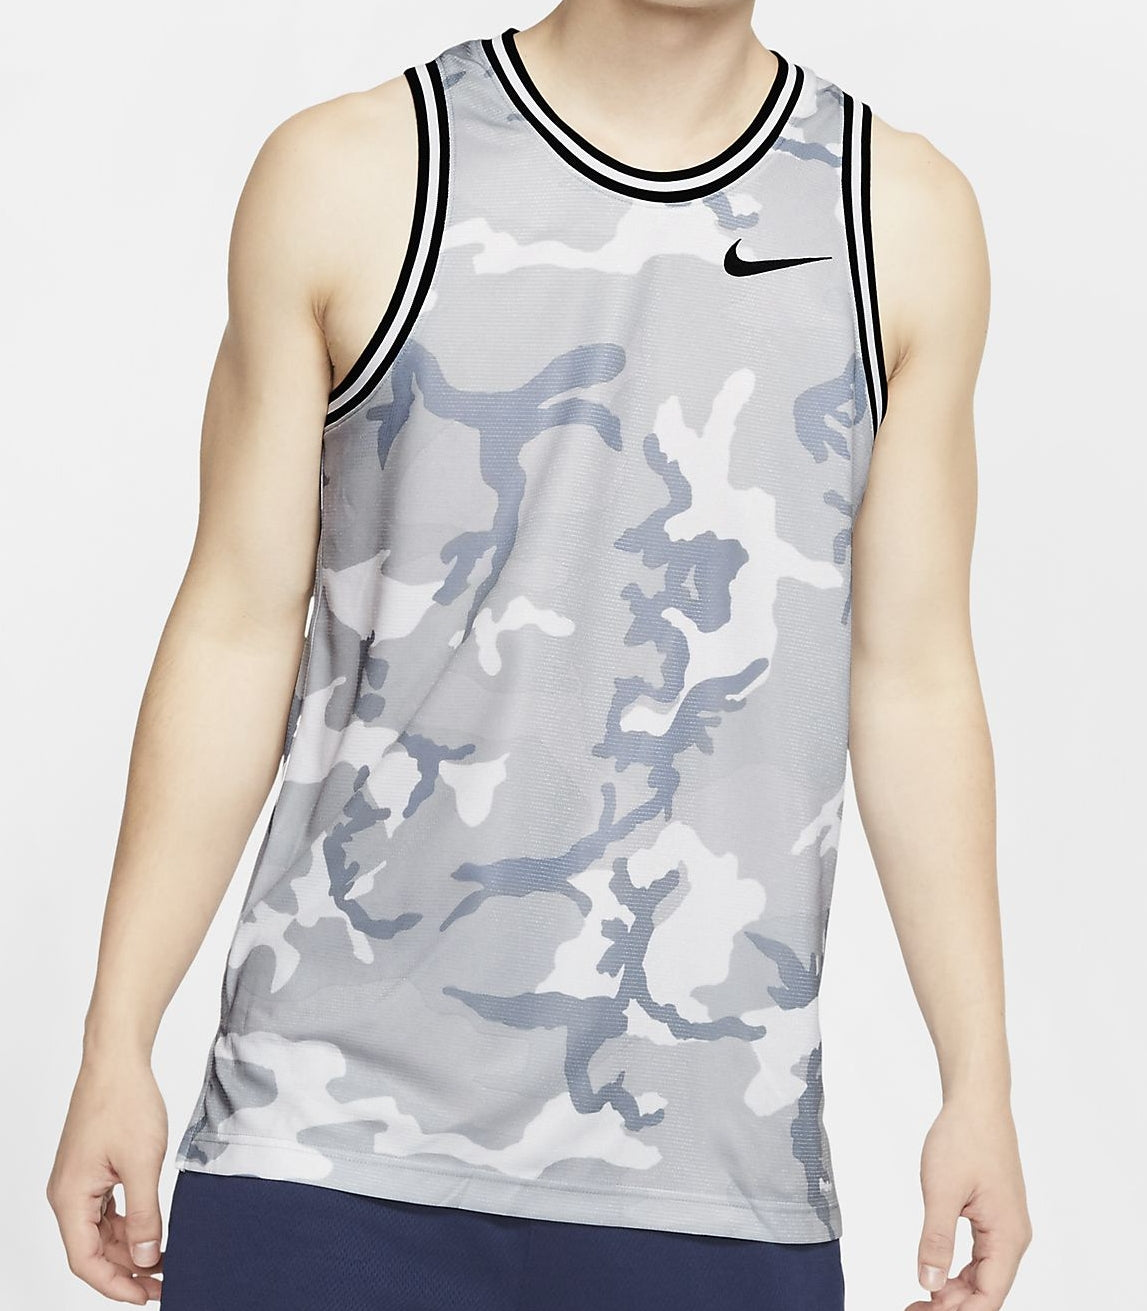 Nike Basketball Dri-Fit DNA Camo Graphic Sleeveless Jersey - Wolf Grey/Black